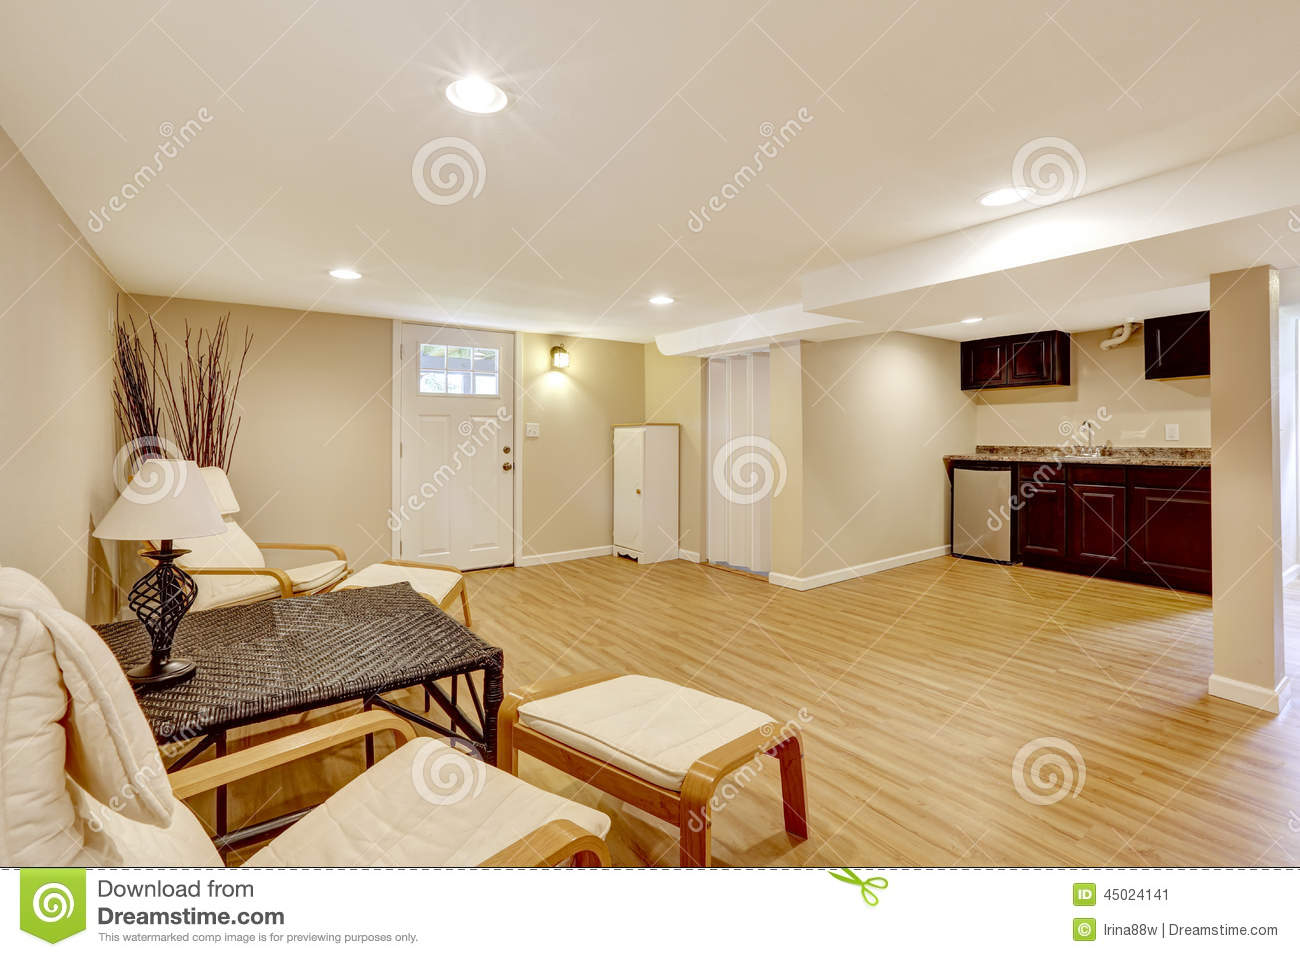 Basement Mother in law Apartment Living Room And Kitchen Area Stock Image